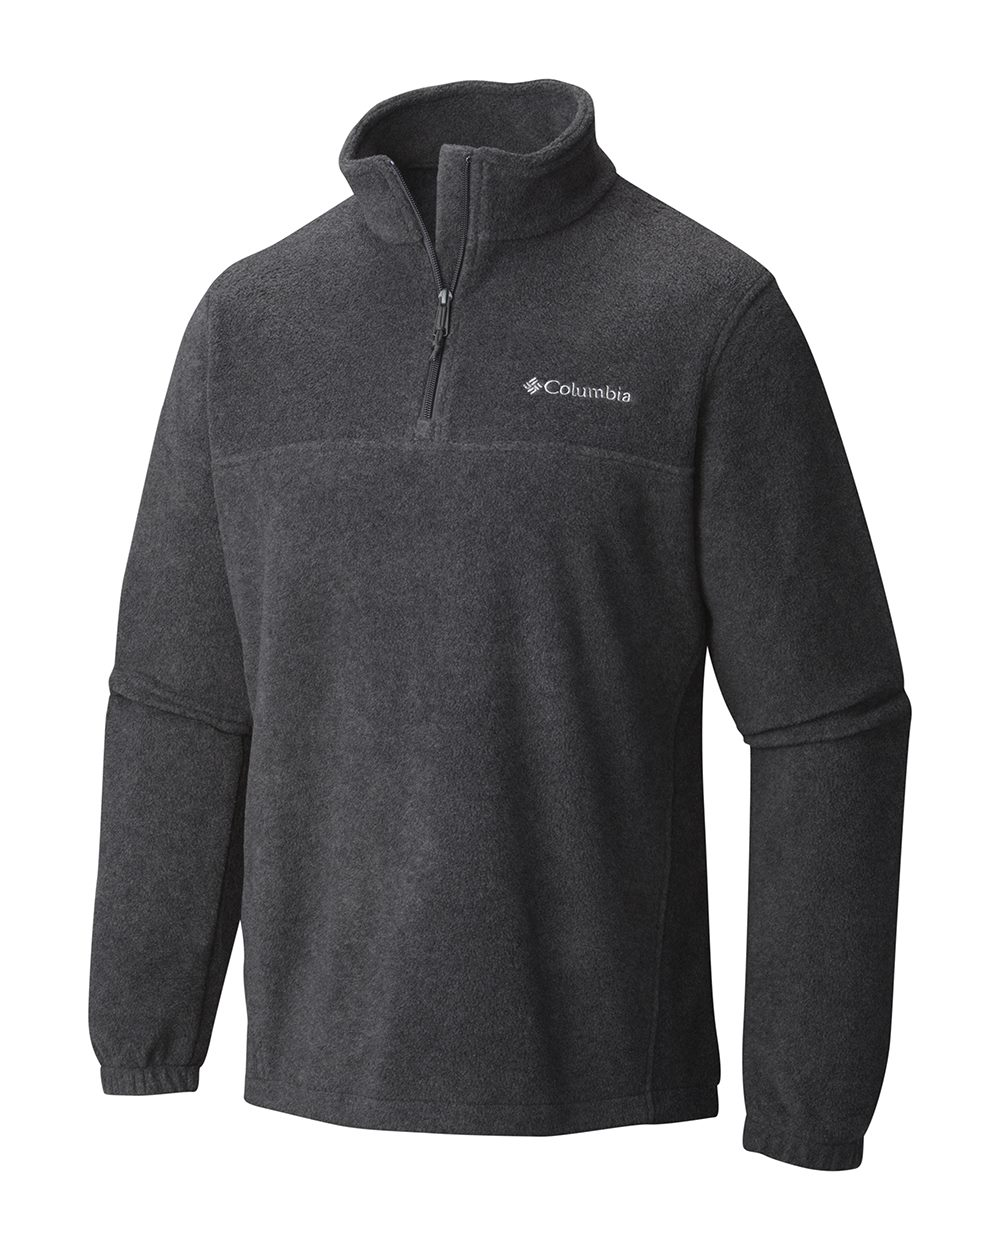 Columbia 162019 - Steen's Mountain Quarter-Zip Fleece